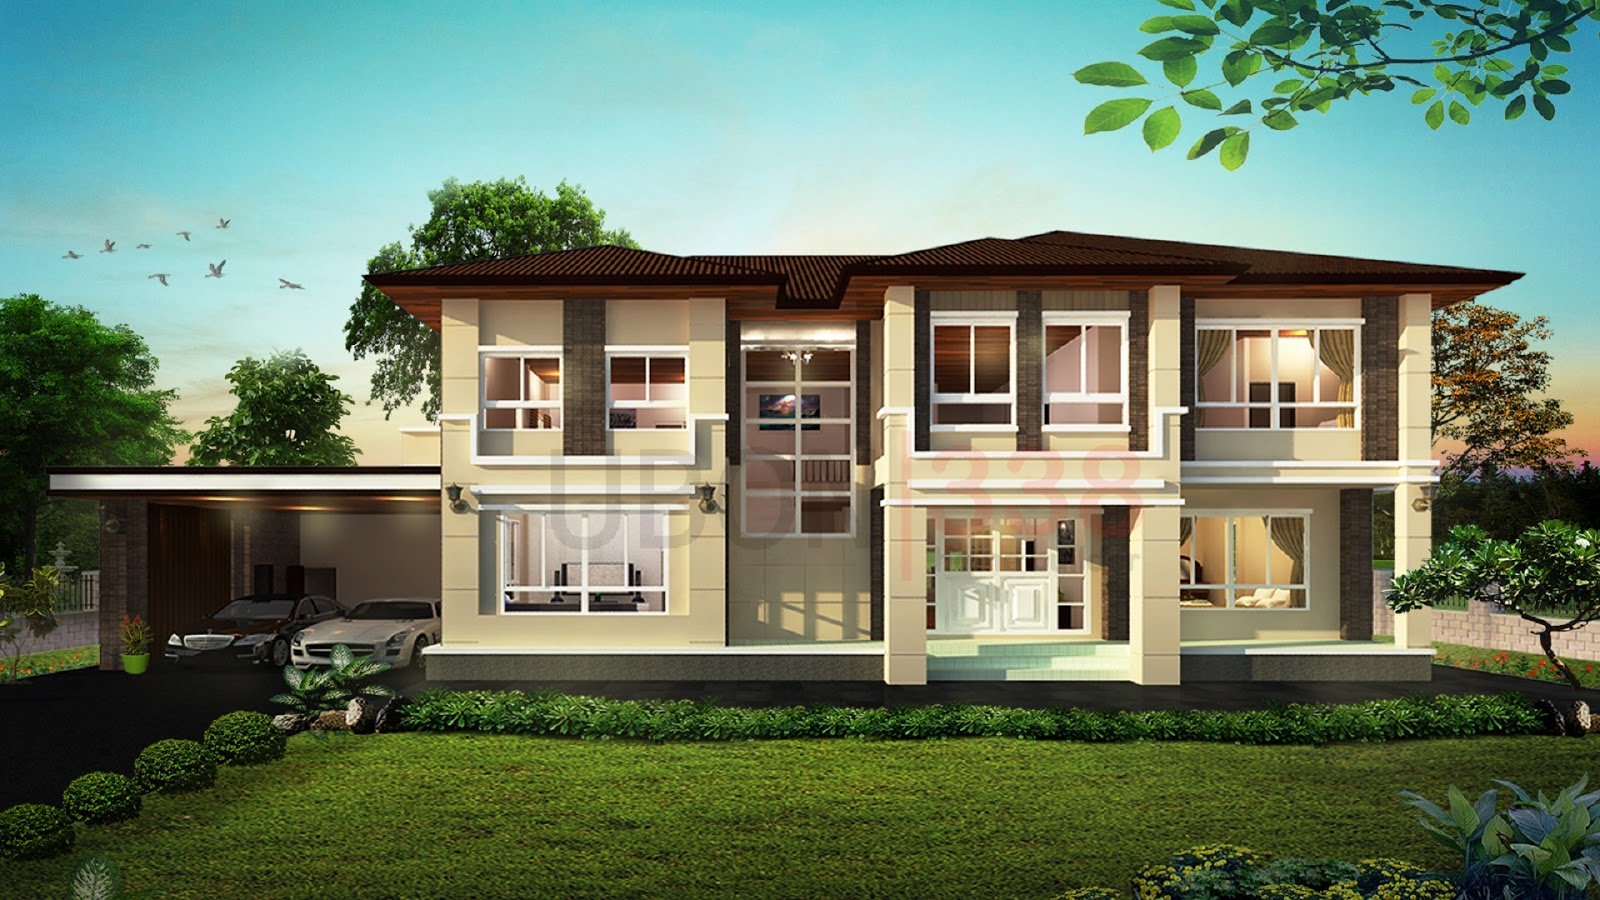 For some people, the bigger the house the better especially if you have big families. Nowadays, there are many two-story modern styles that have been popular to fits the life in the city. We love to have large interiors that are spacious and airy. The following 12 houses can be considered as suitable for big families because it has four to five bedrooms and living room large enough for all members of the family. Aside from giving your kids with their own room, still you can have a guest room.   Living in a spacious house has many advantages. People living in small areas will be the first one to realize that there is a big difference.  It allows you to design and personalize and provides more space for everyone!  If you liked this house, you might want to consult this design with your architect.